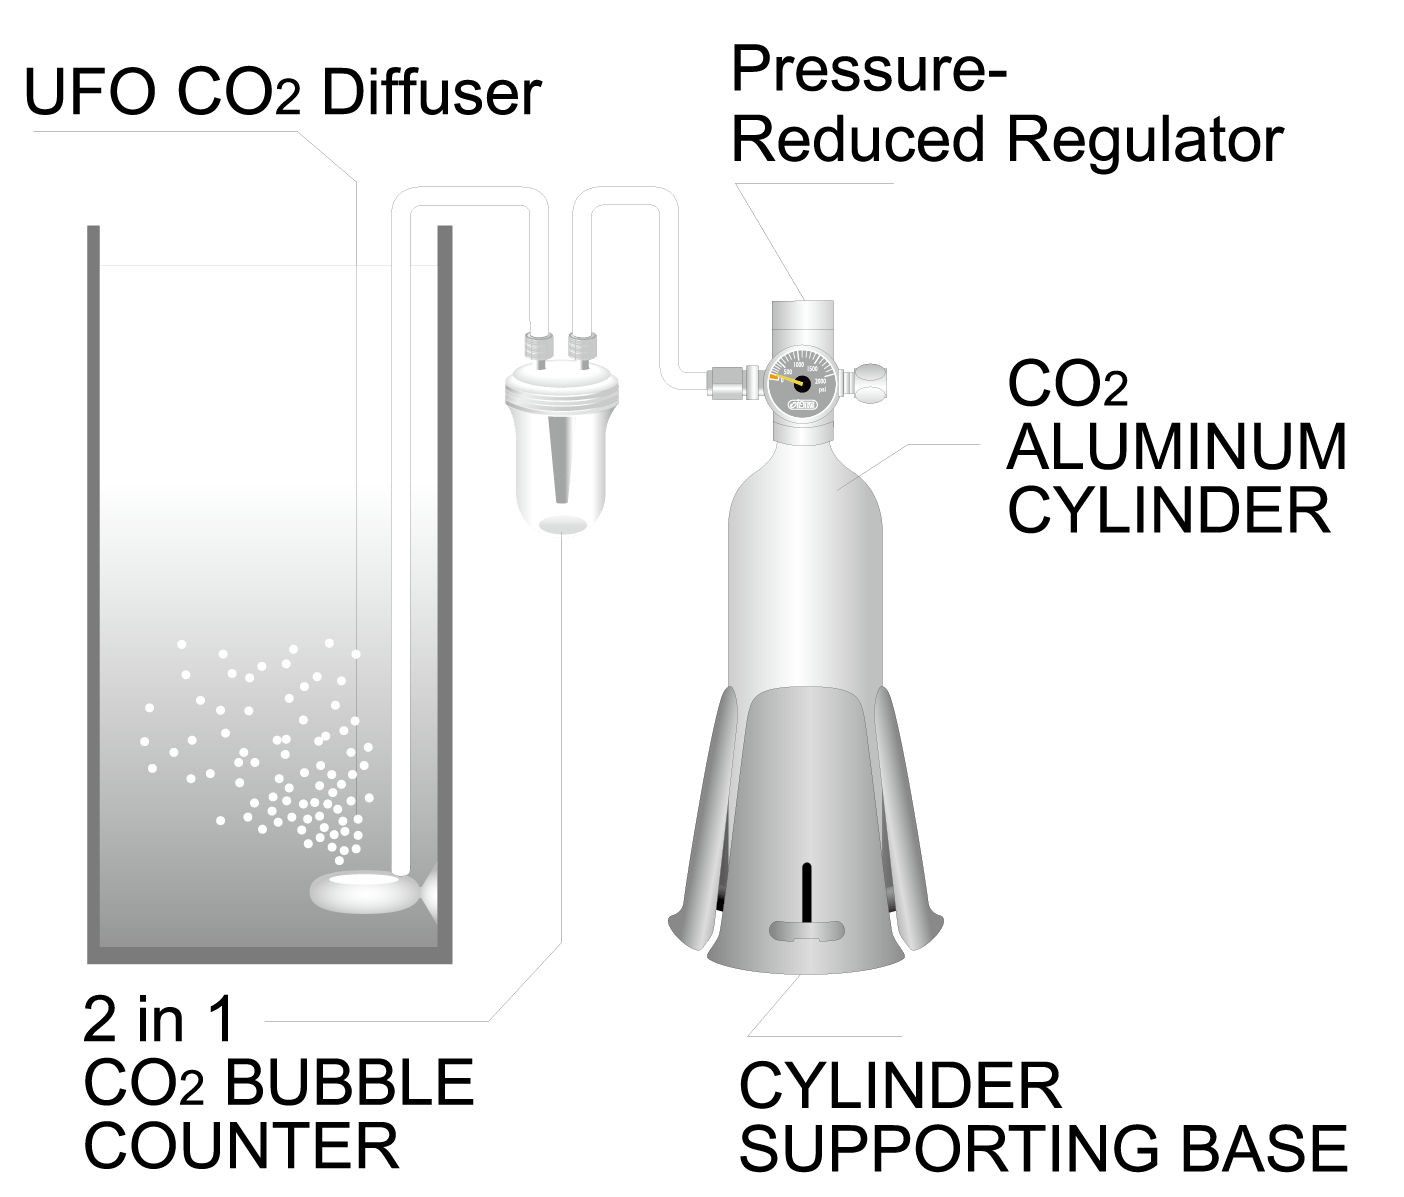 hight resolution of next turn to release all the remaining co2 inside the pressure regulator completely until the pressure gauge show 0 pressure